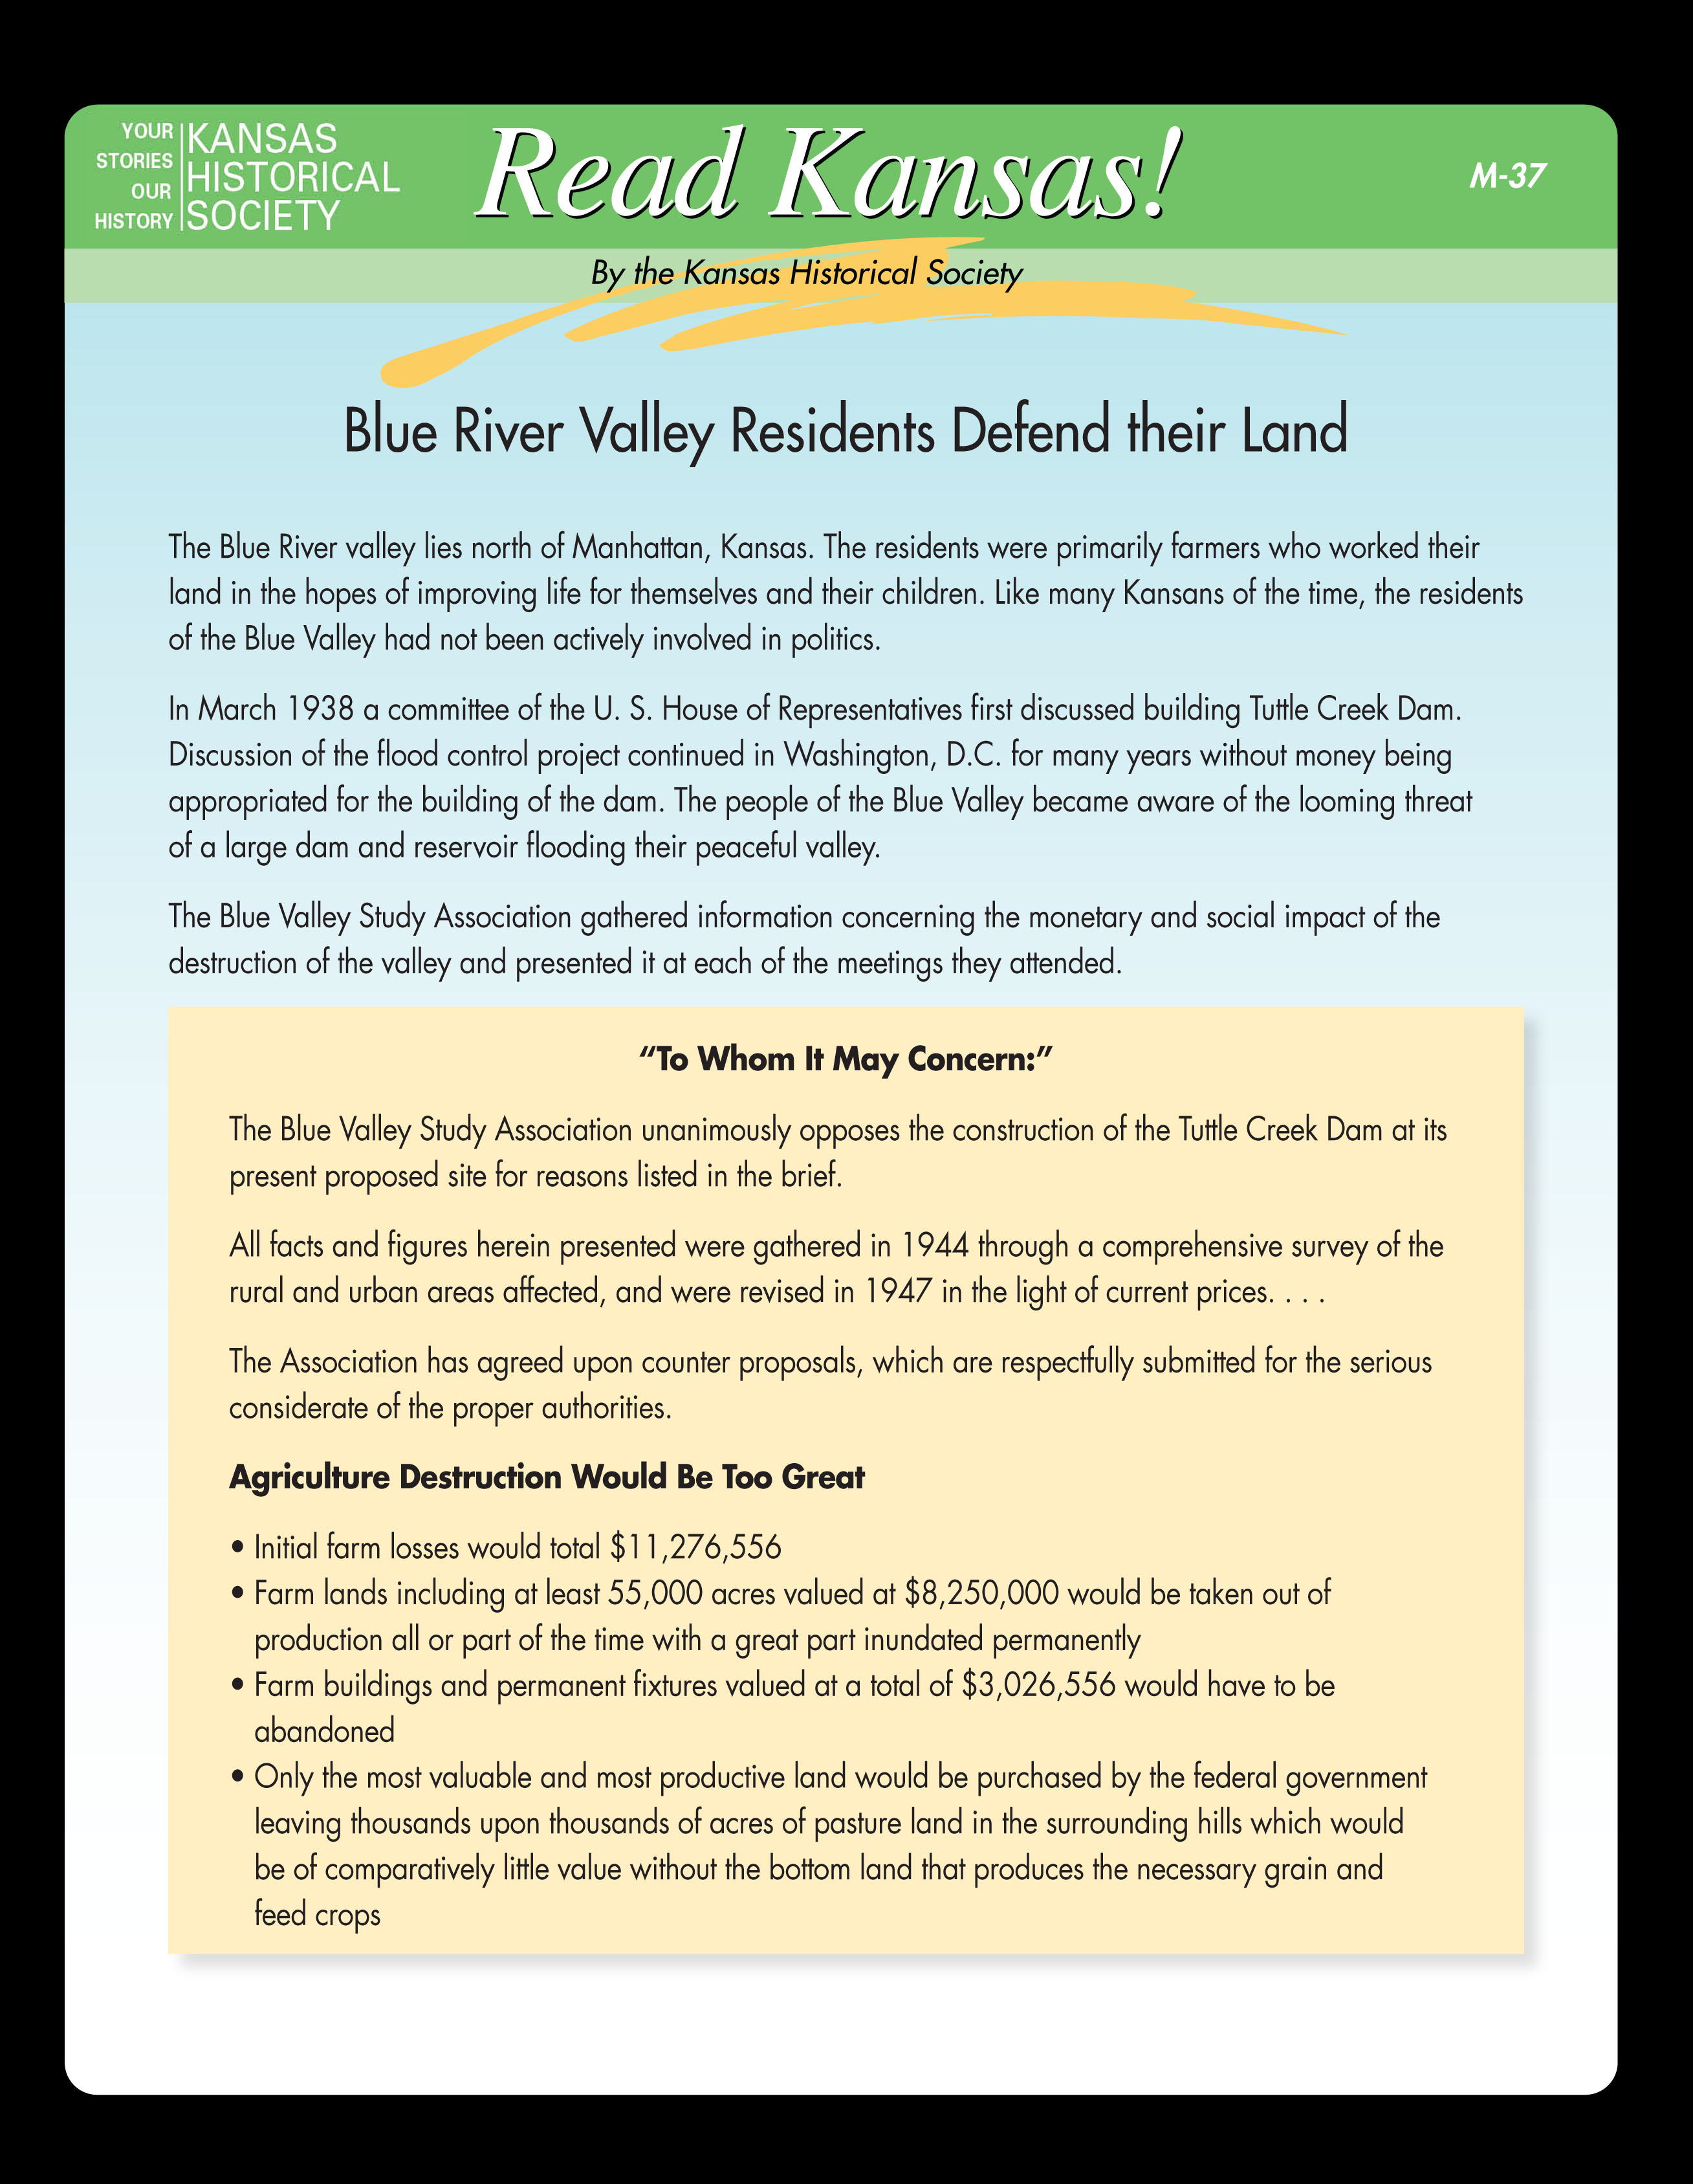 Blue River Valley Residents Defend their Land